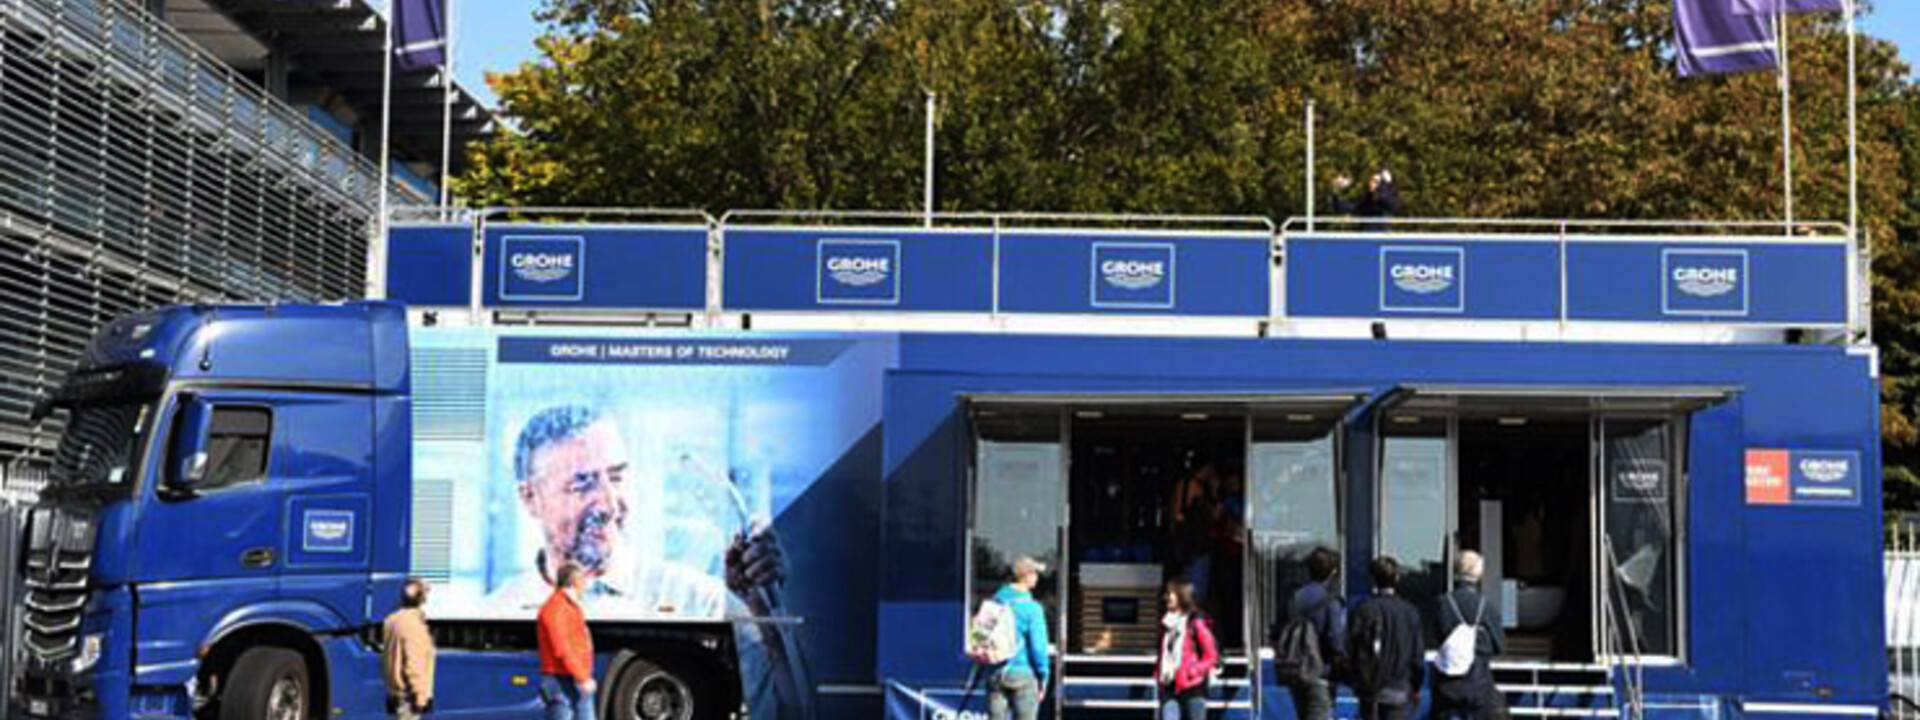 grohe-mobile-messe-roadshow-3.JPG